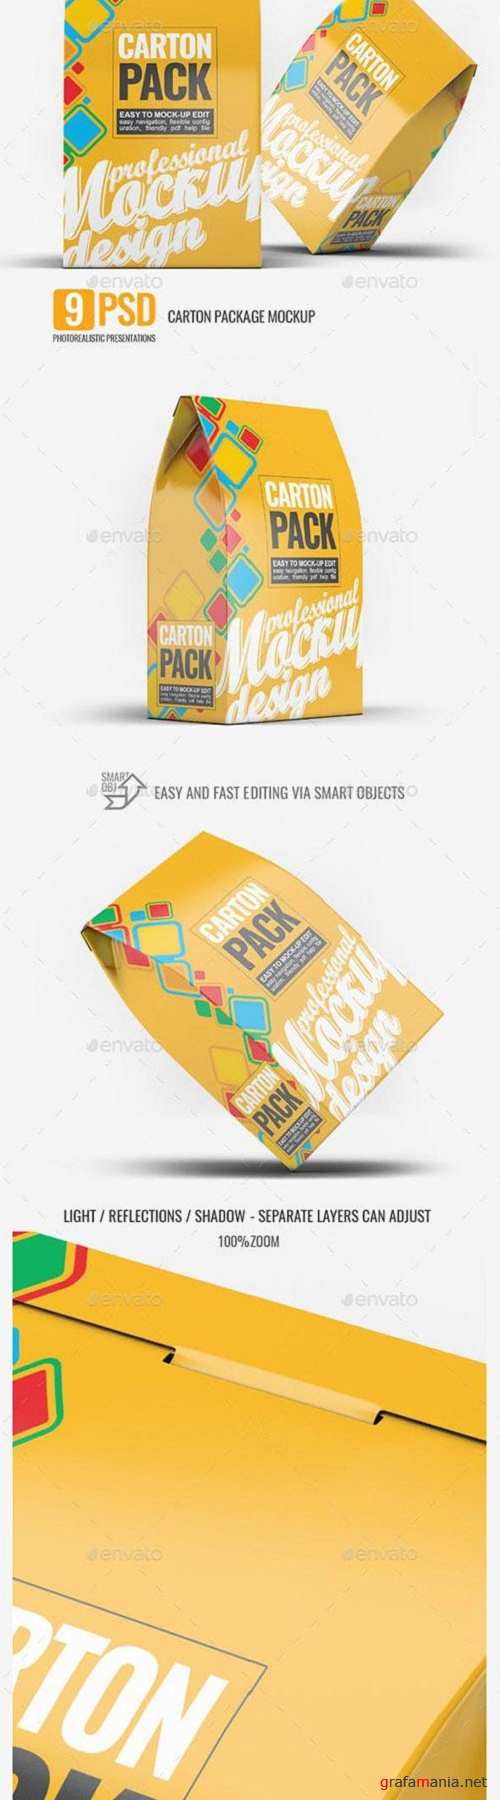 Carton Box Pack Mock-Up 23224959